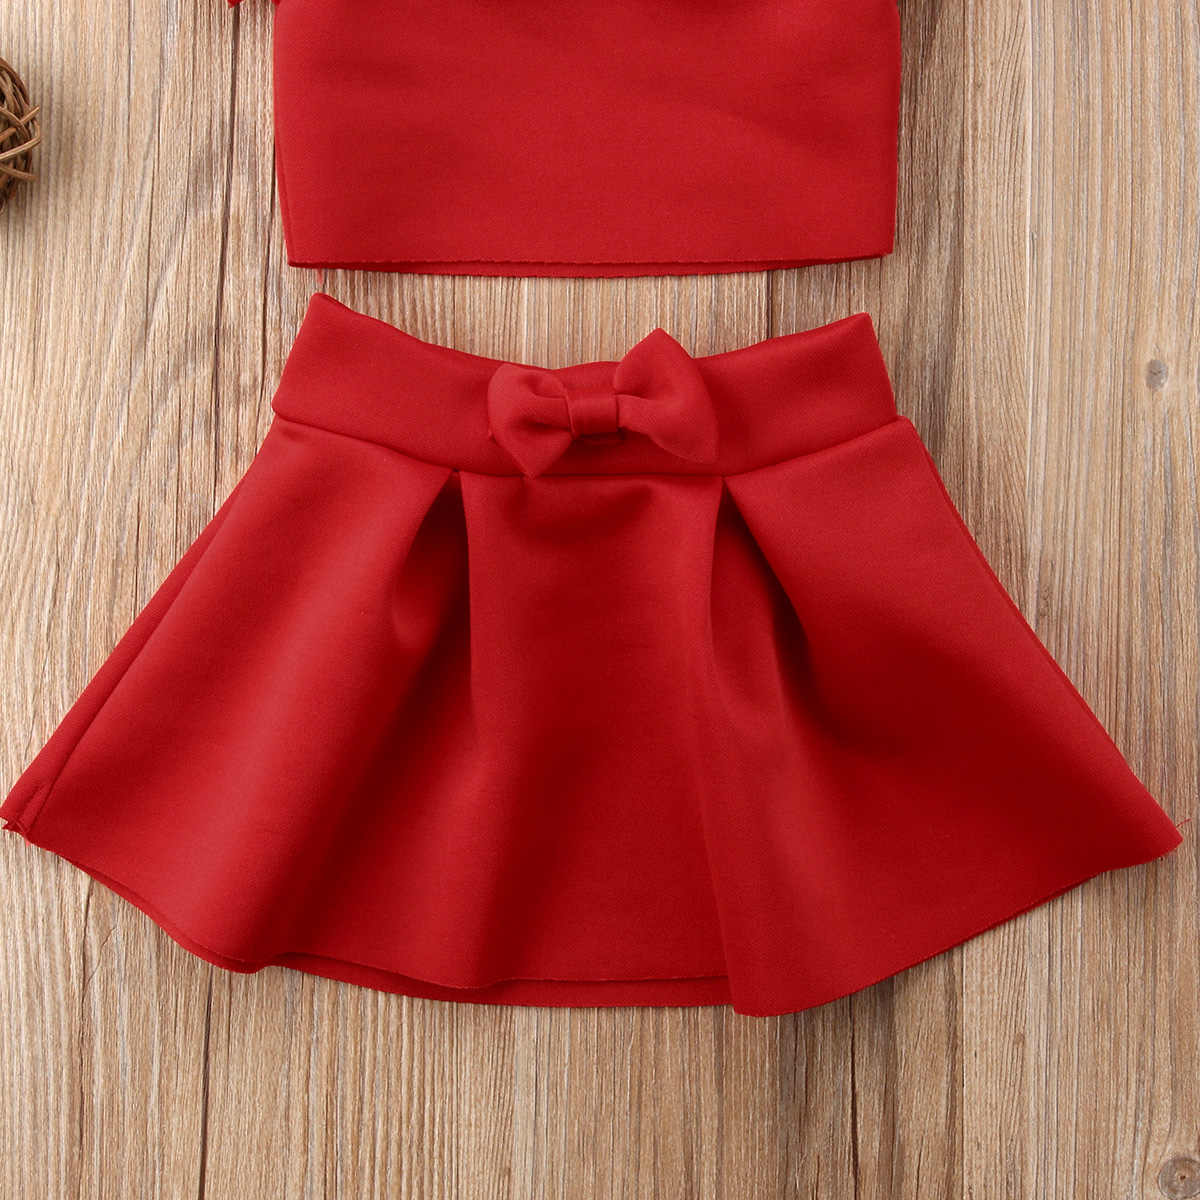 10704856d9 ... Newborn Kids Baby Girl Party Off Shoulder Crop Tops Skirt Outfits  Clothes Summer Cute Princess Solid ...